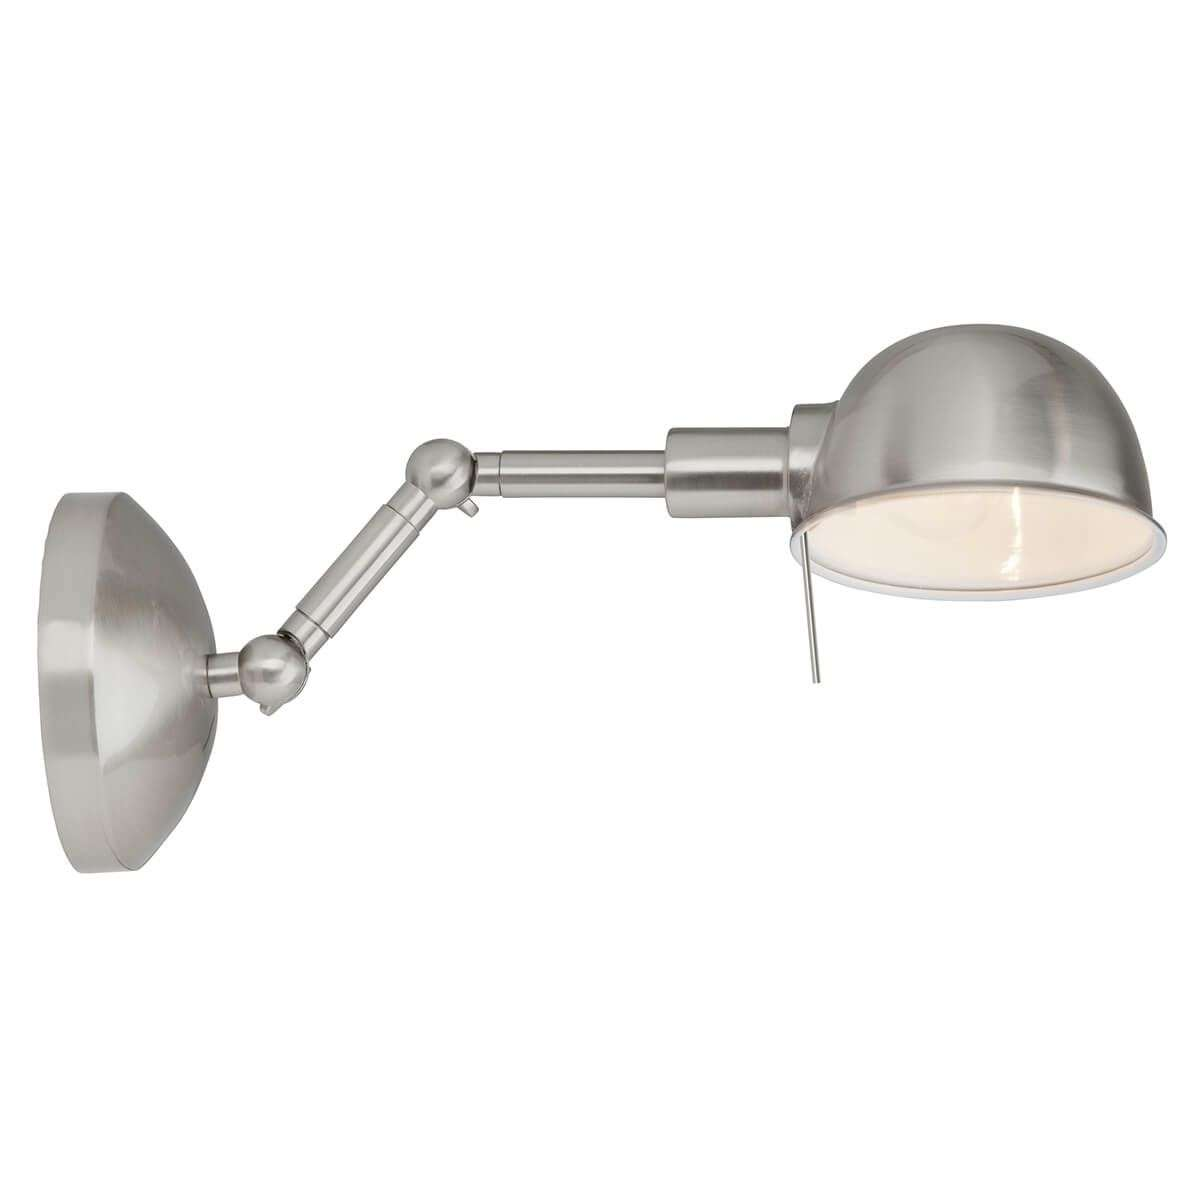 Flexibly Adjustable Wall Light Sasha 1509013 31